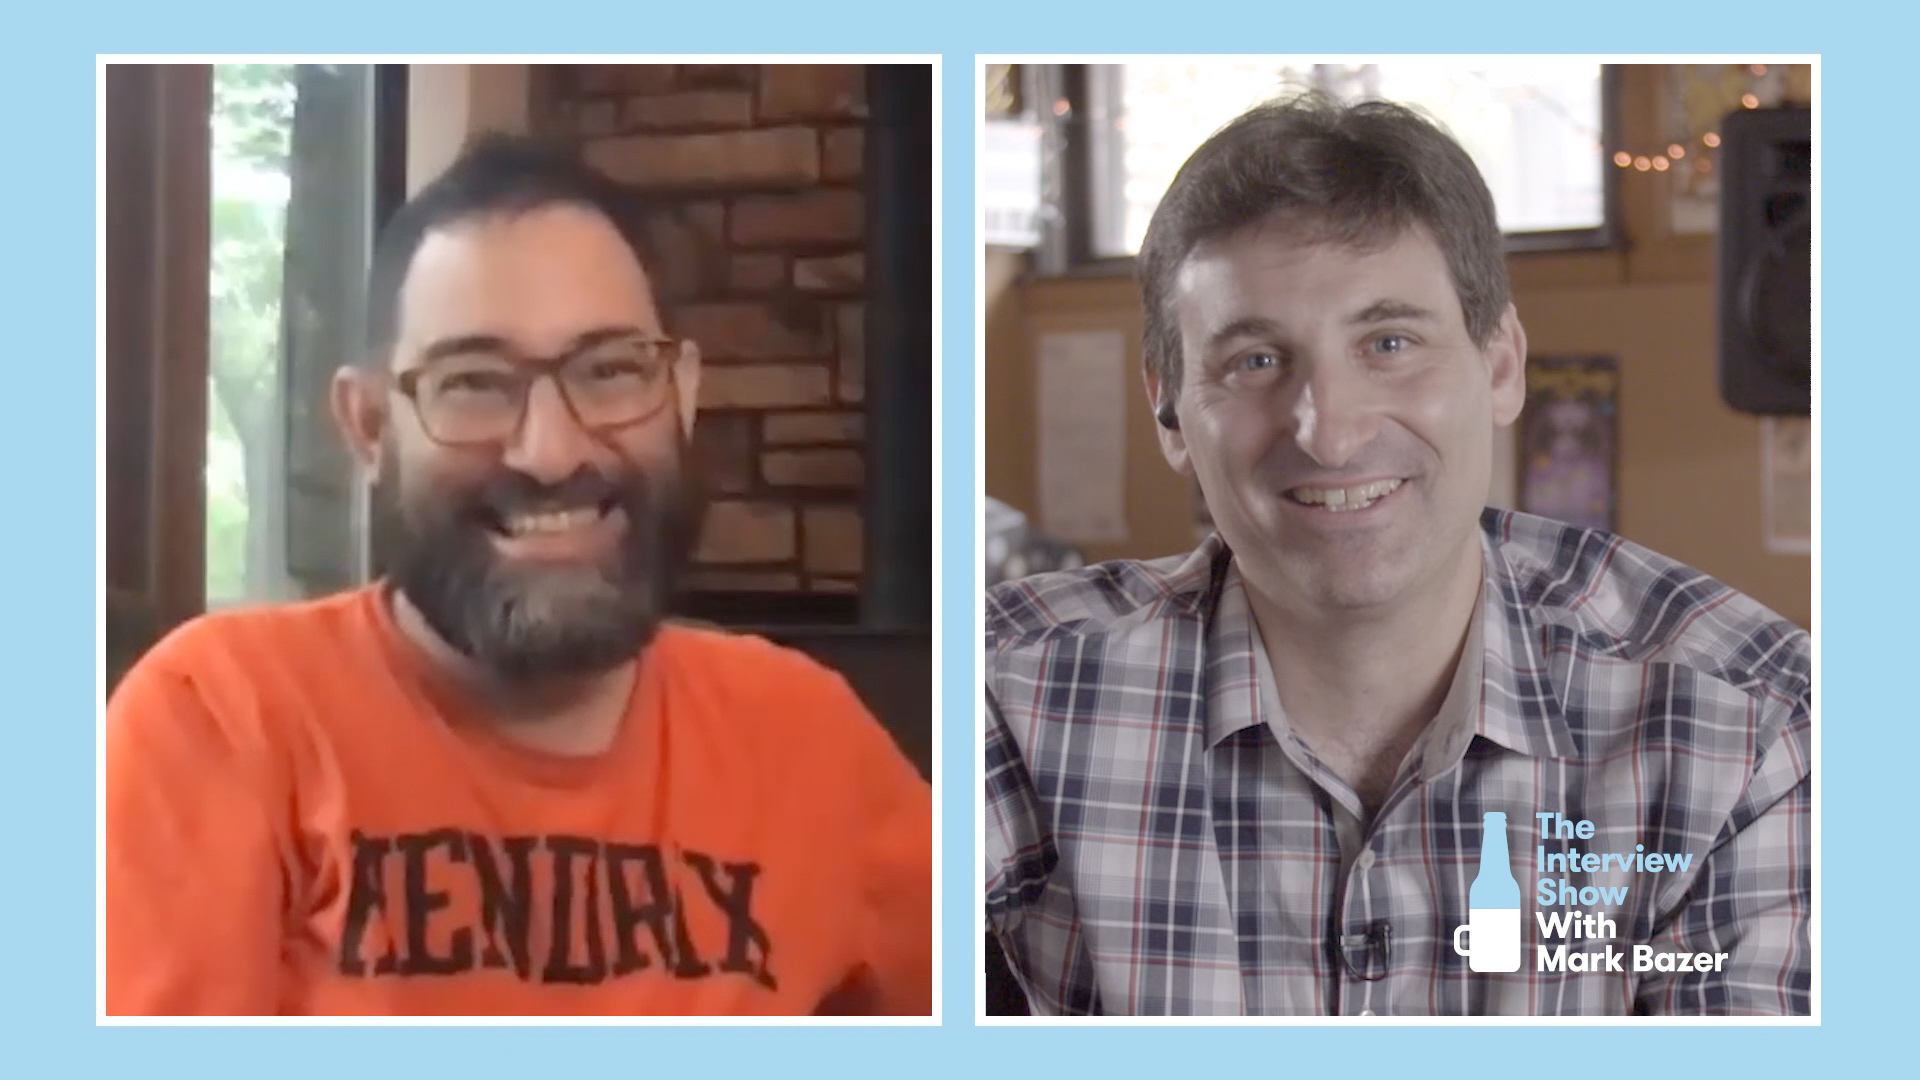 Rick Perlstein | The Interview Show with Mark Bazer